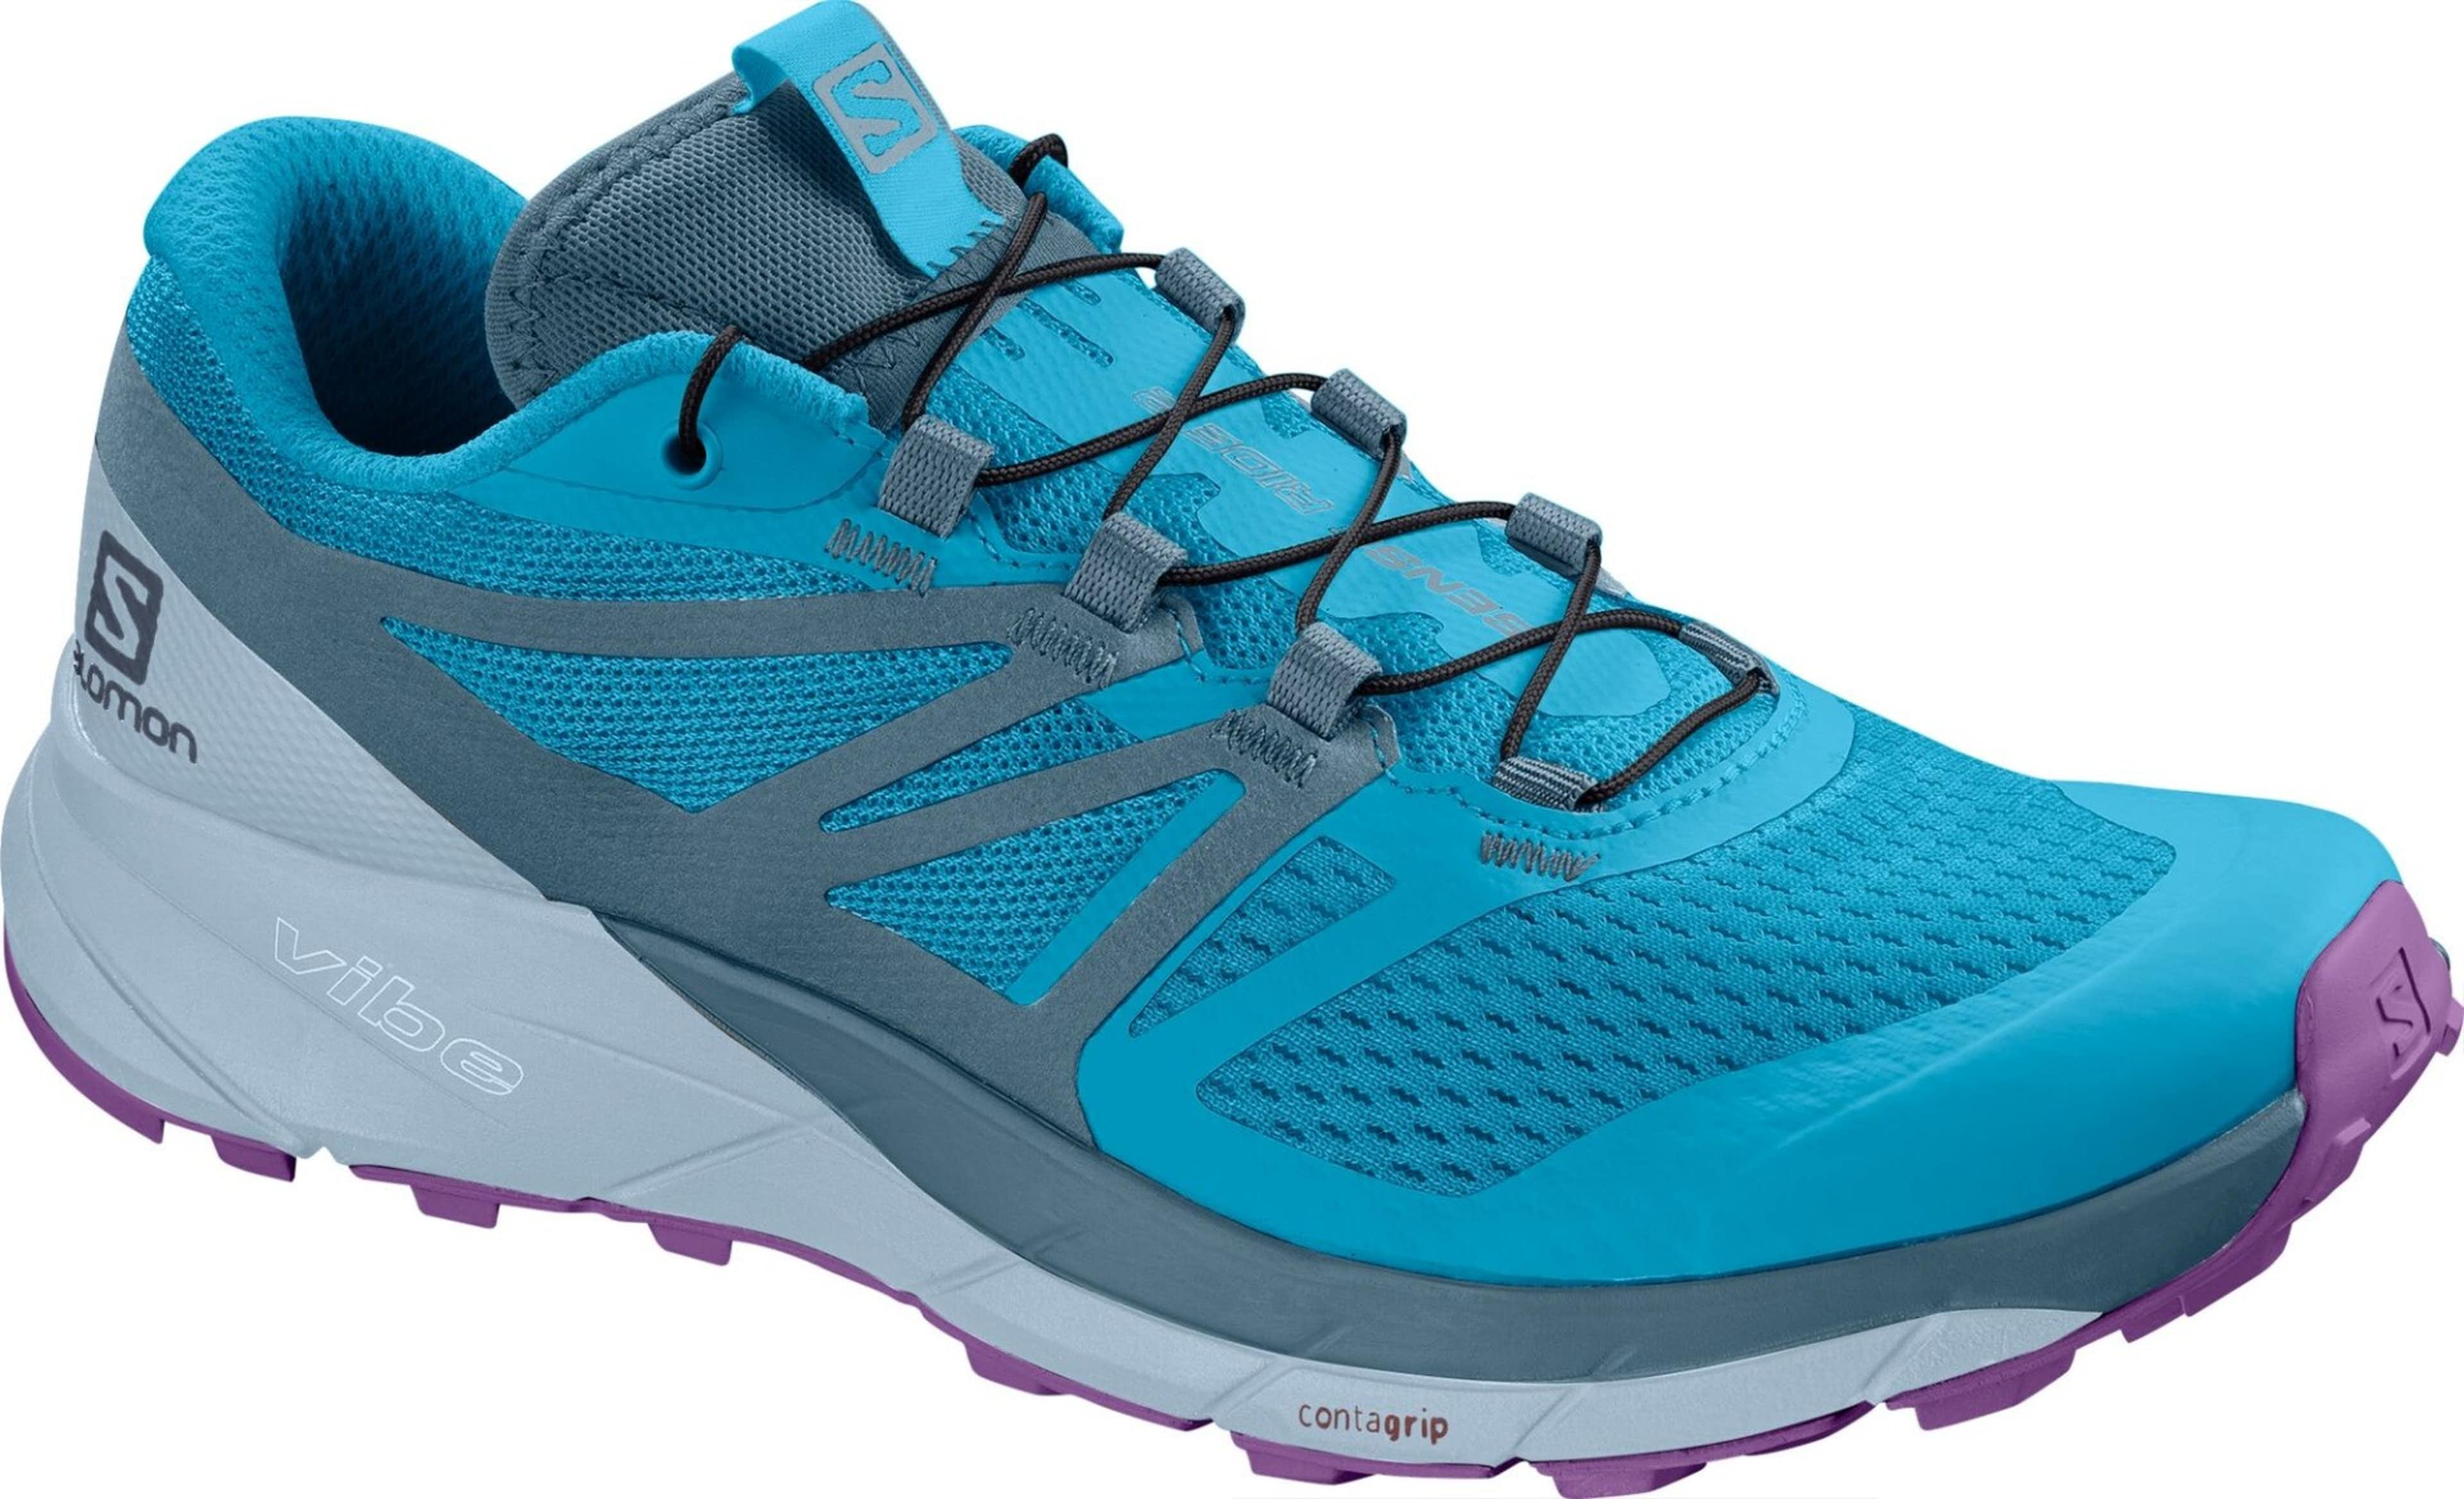 new product 266d7 dbfda Salomon Shoes, Boots | Hiking & Running Footwear Sale | AU